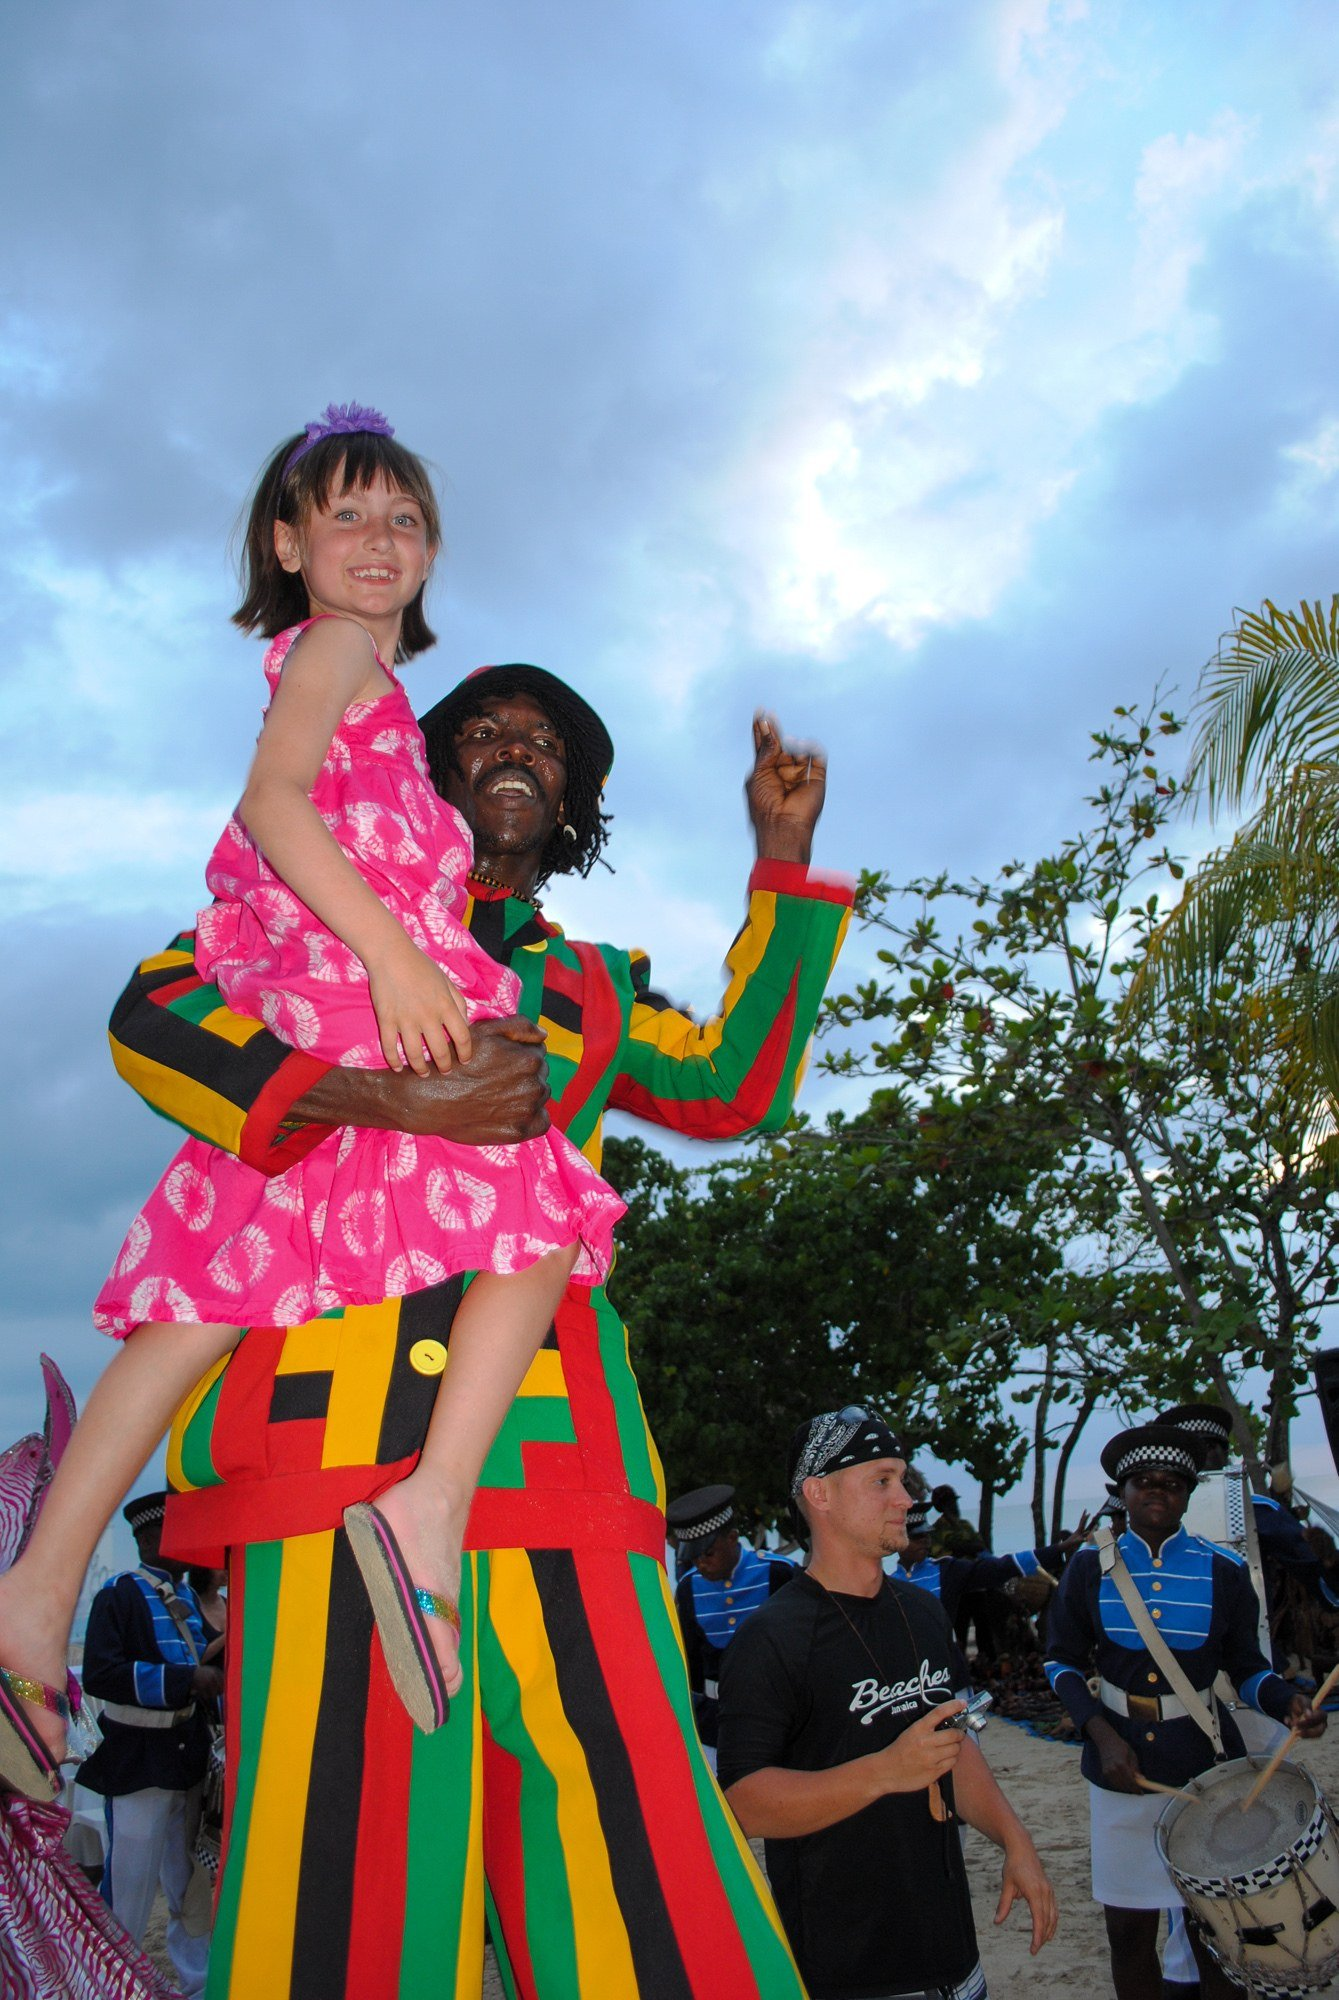 Stilt-walker in the Sesame Street Parade at Beaches Negril Resort in Jamaica